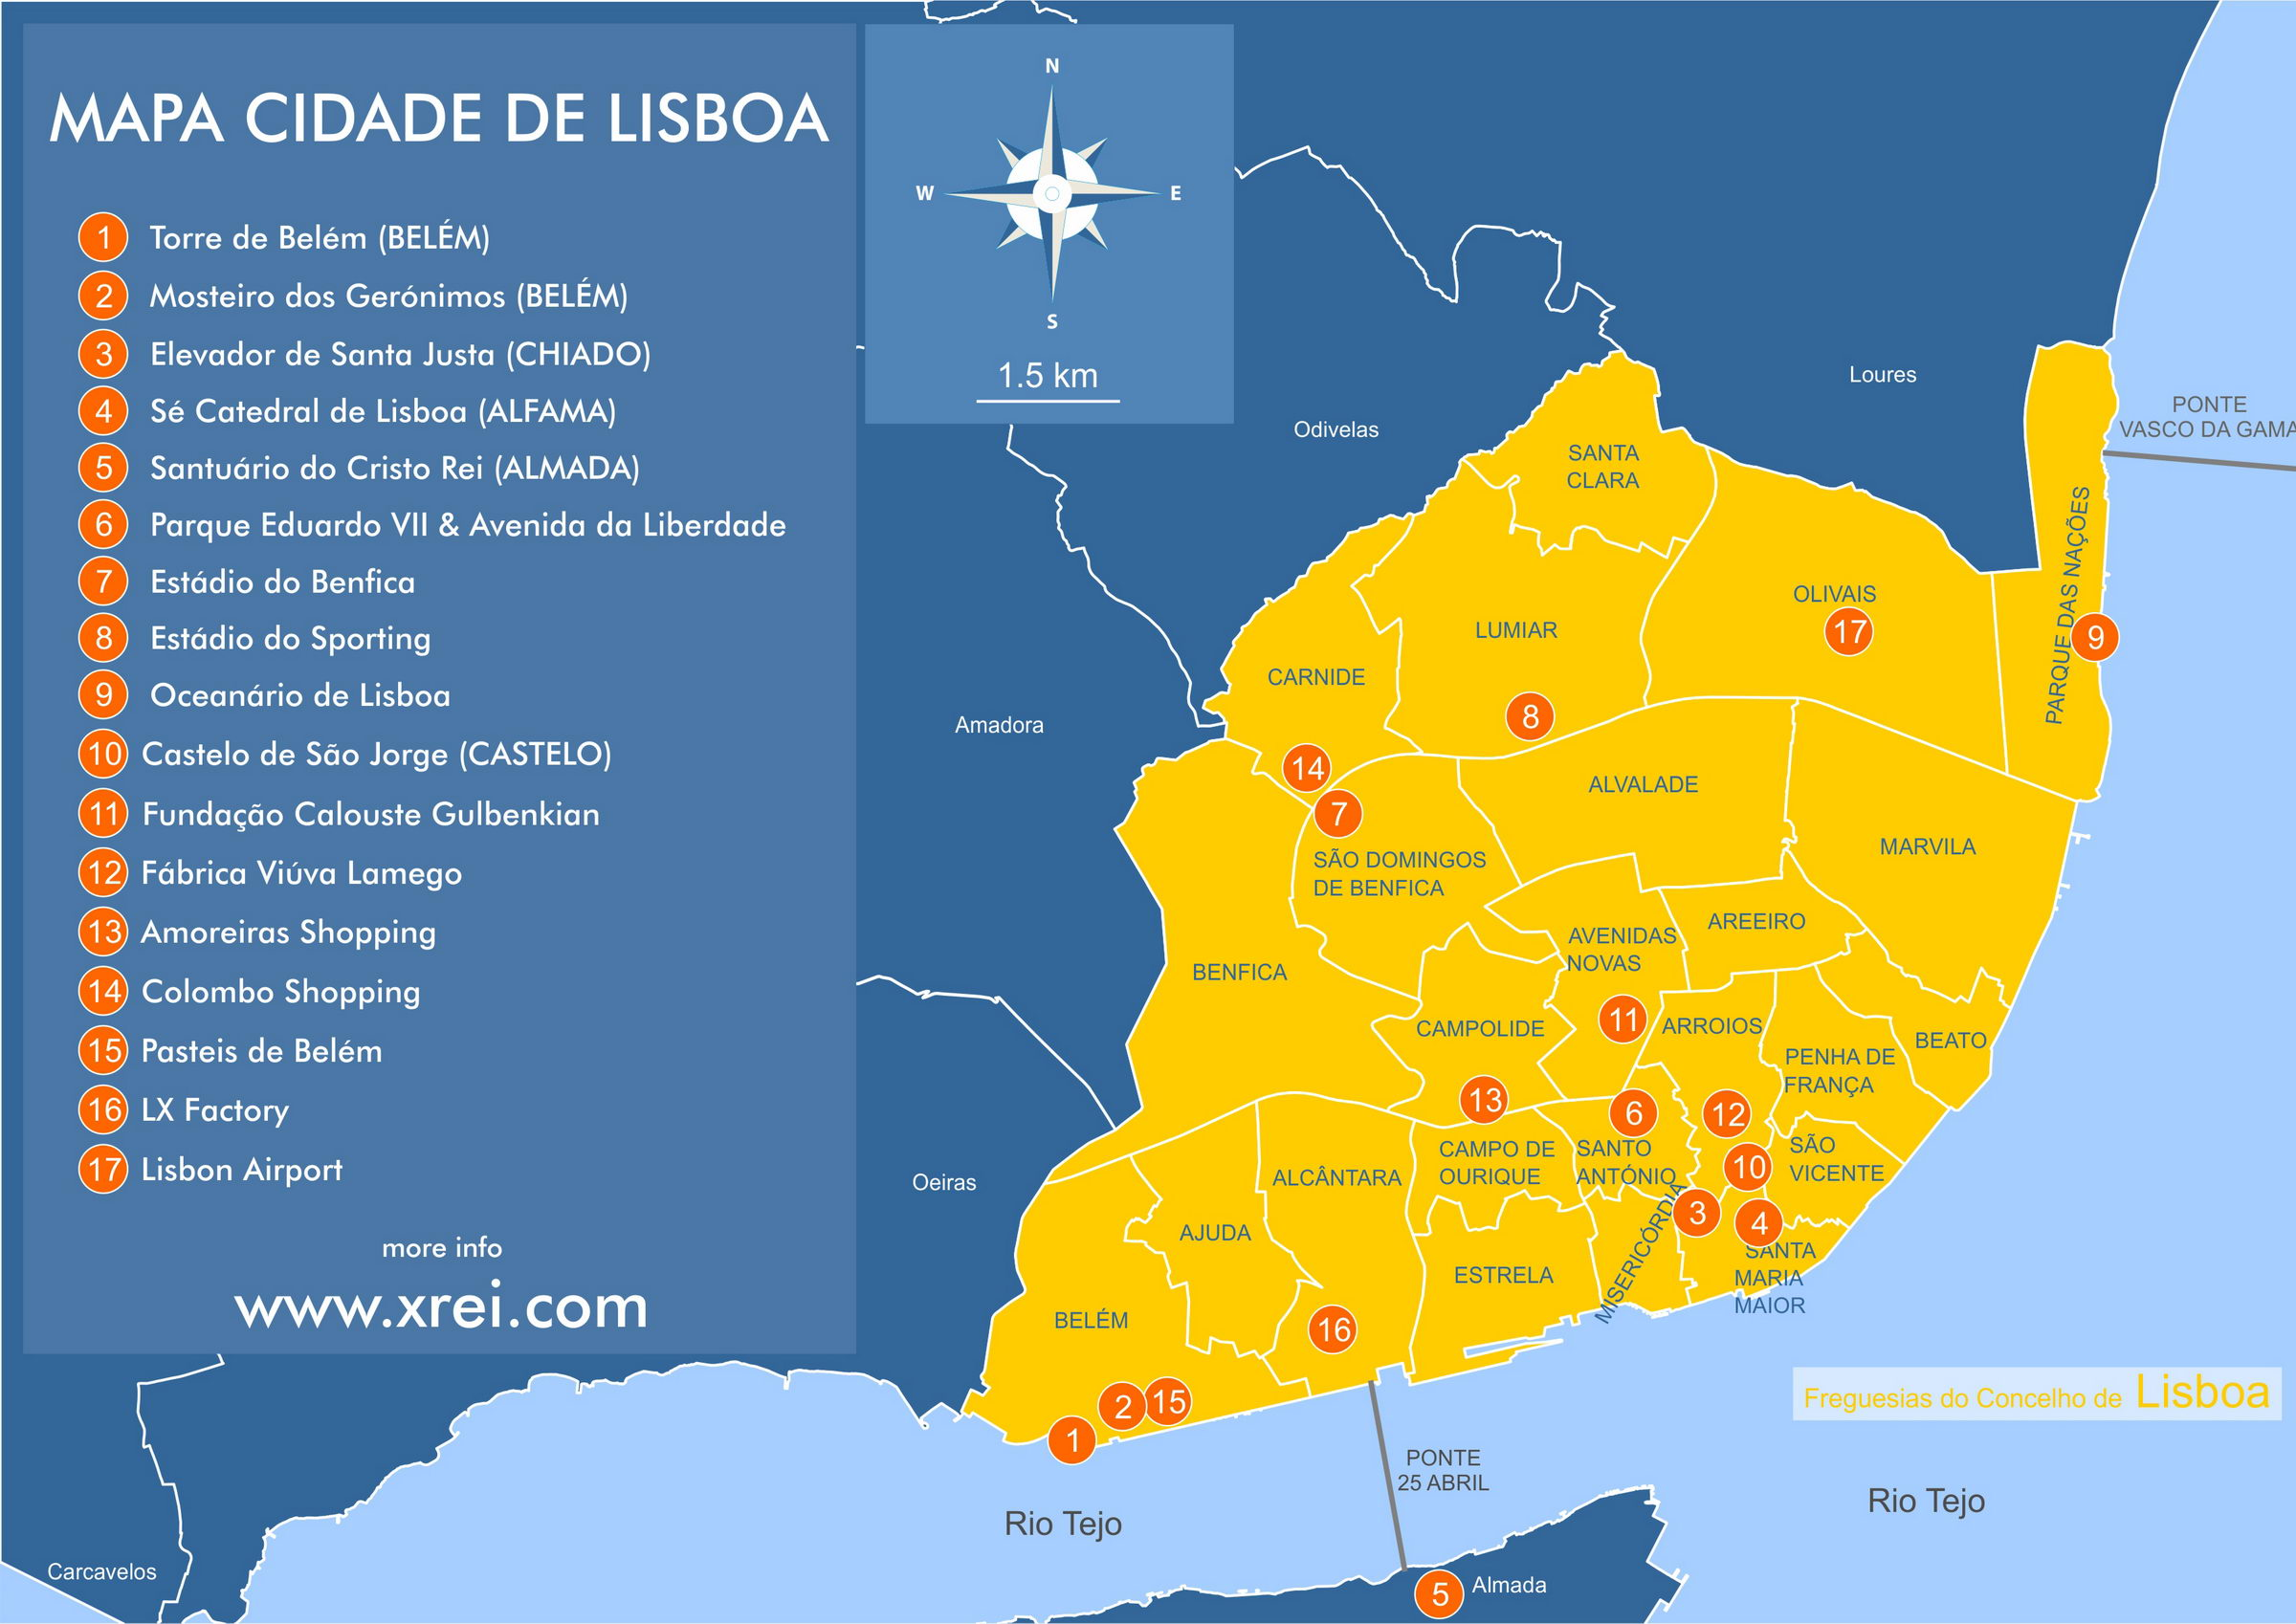 Map of the parishes of Lisbon with some of the attractions and points of interest that you can find in the articles xrei.com